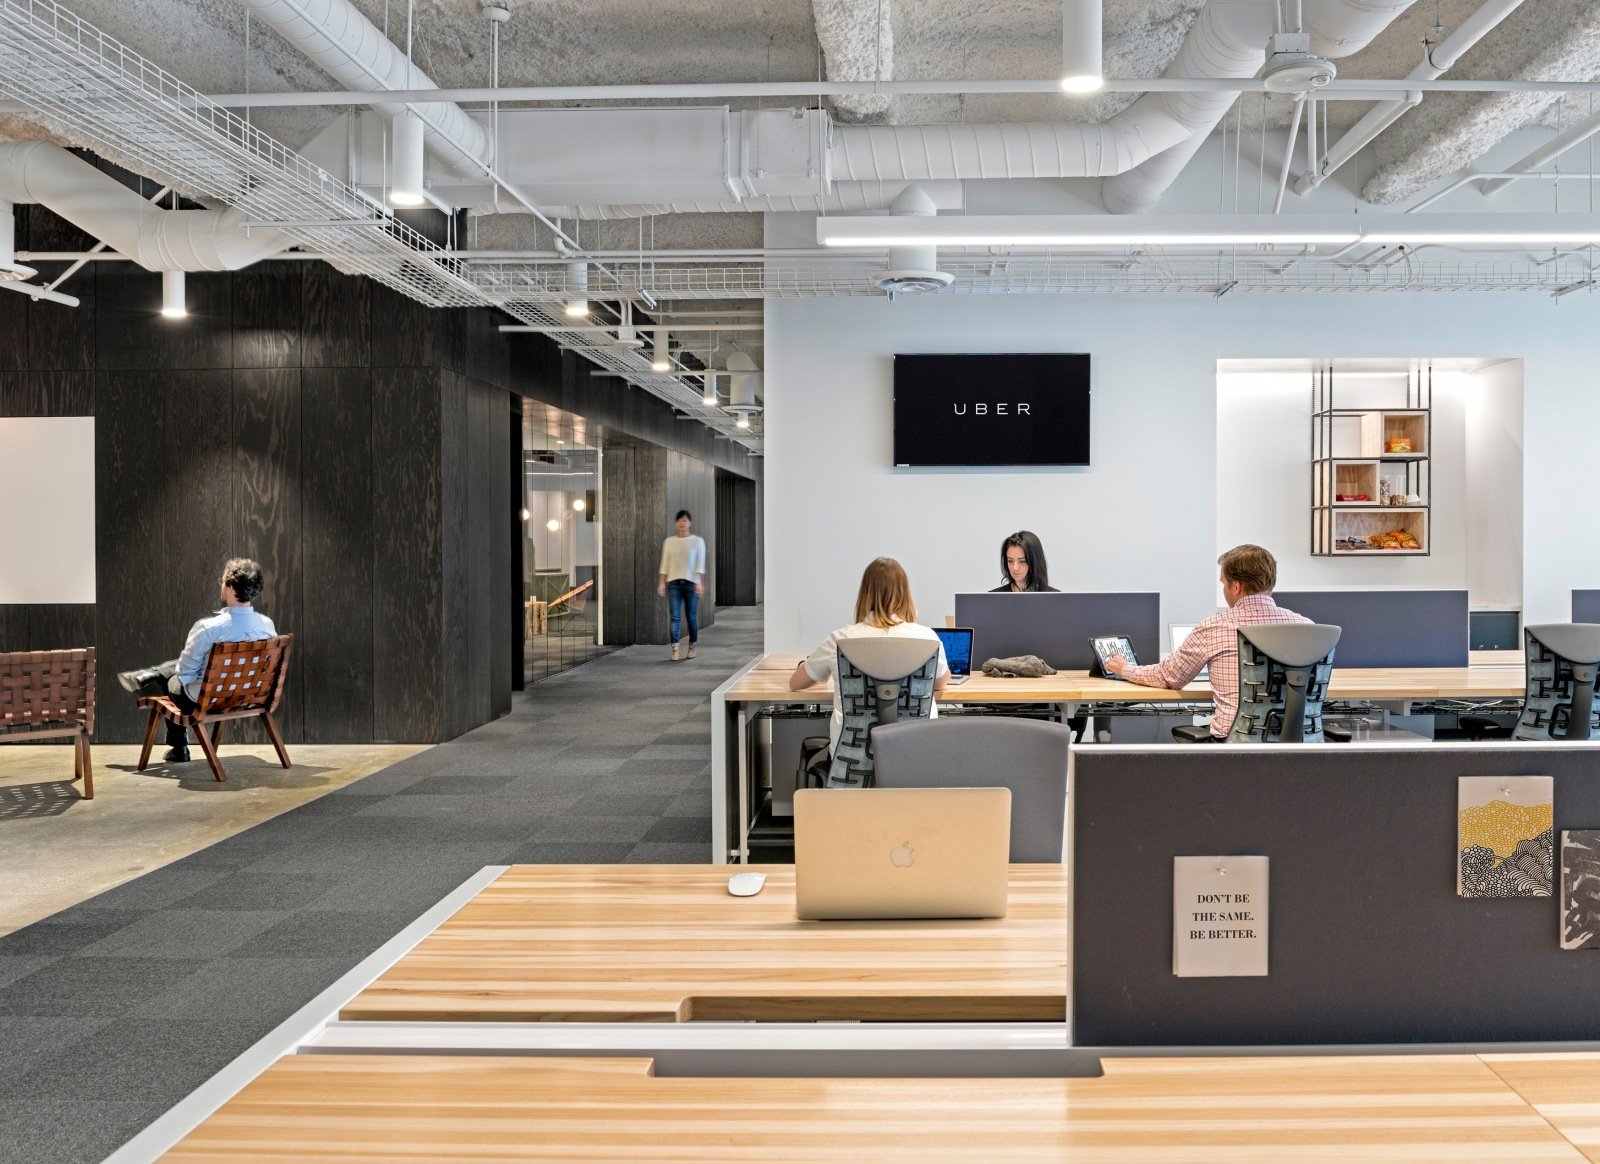 kimball office orders uber yelp. workspace kimball office orders uber yelp